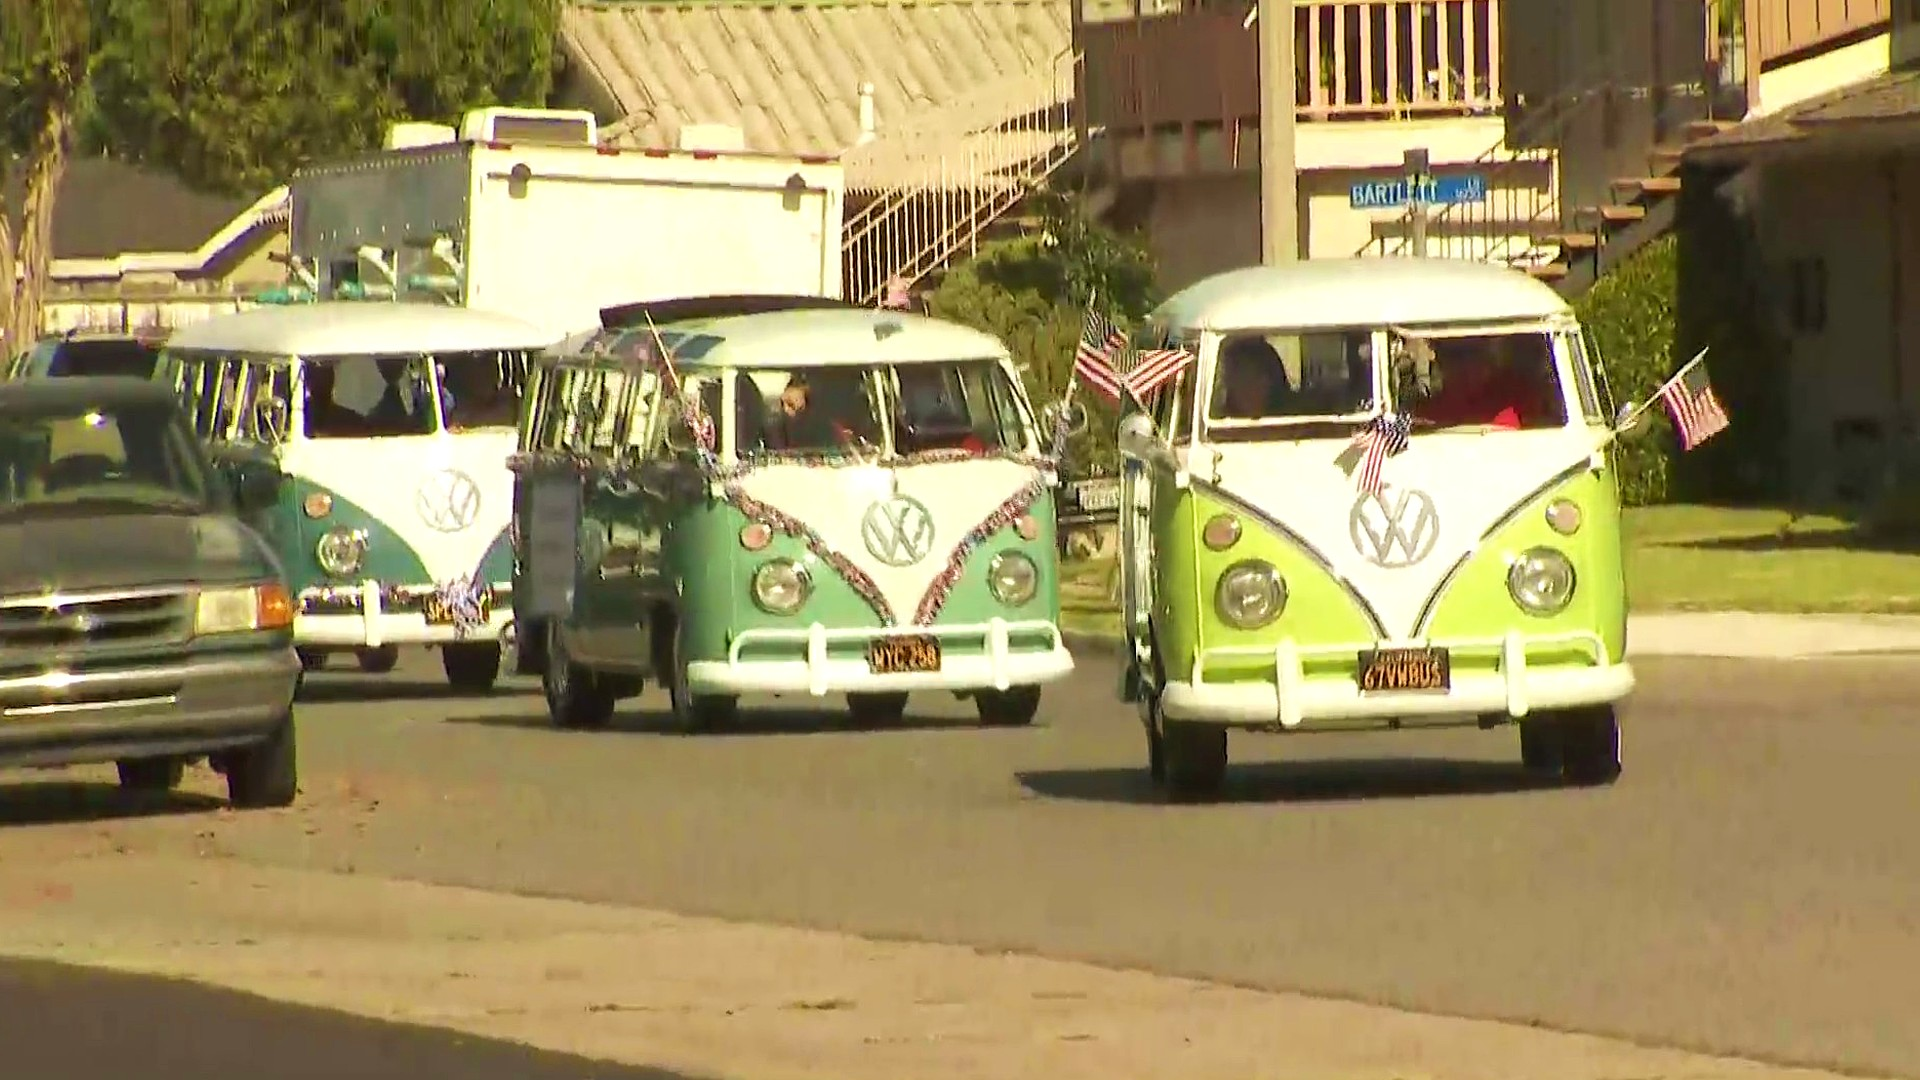 Volkswagen busses are seen amid the Huntington Beach parade on July 4, 2020. (KTLA)